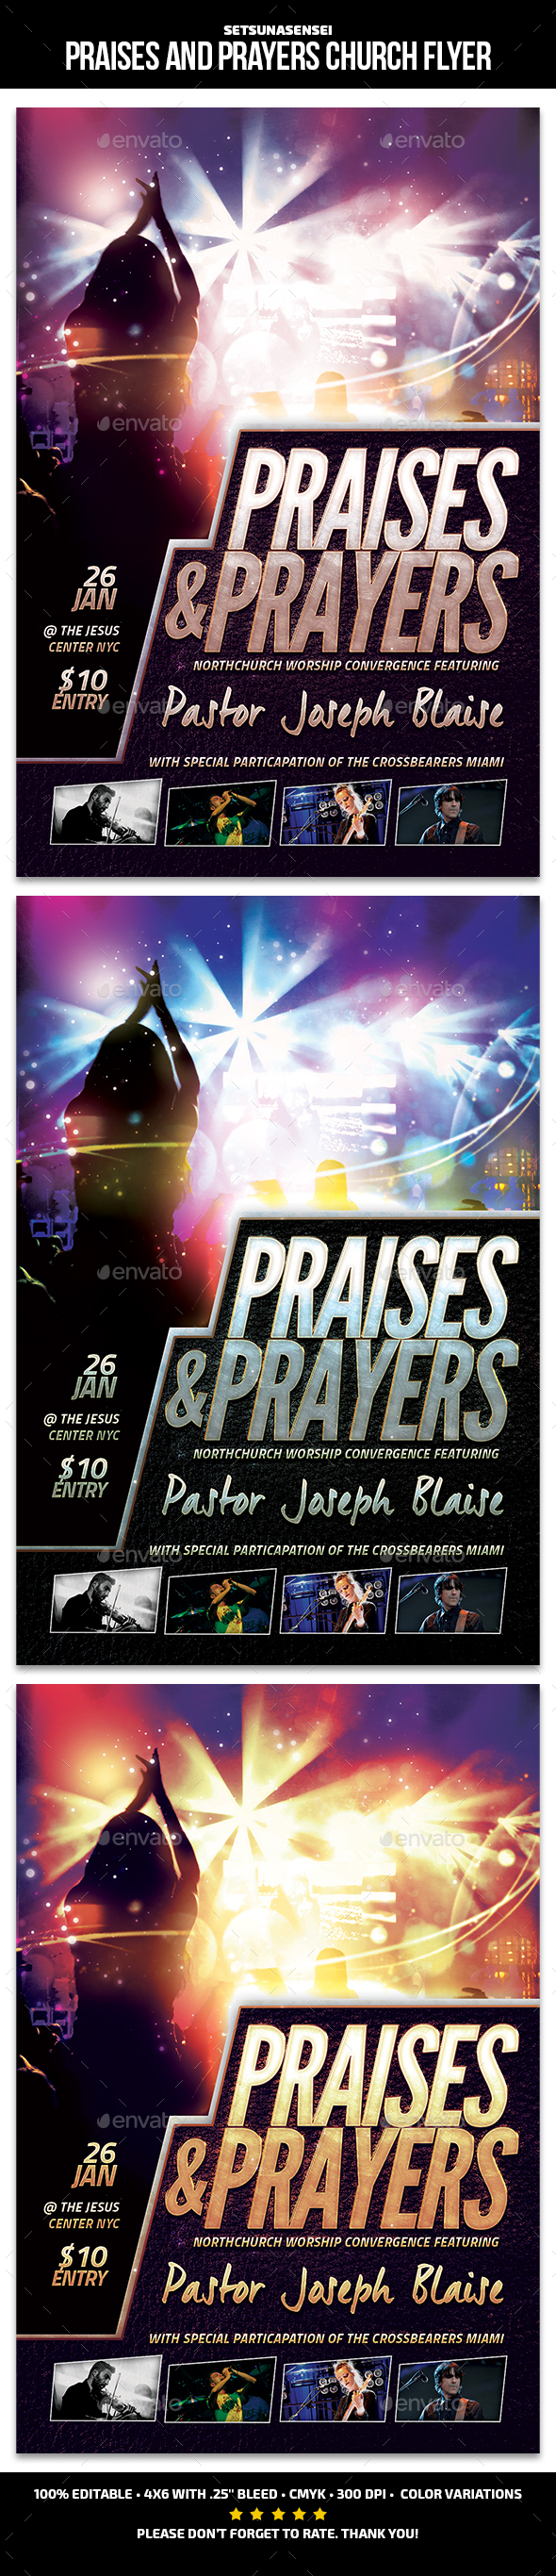 Praises and Prayers Church Flyer - Church Flyers